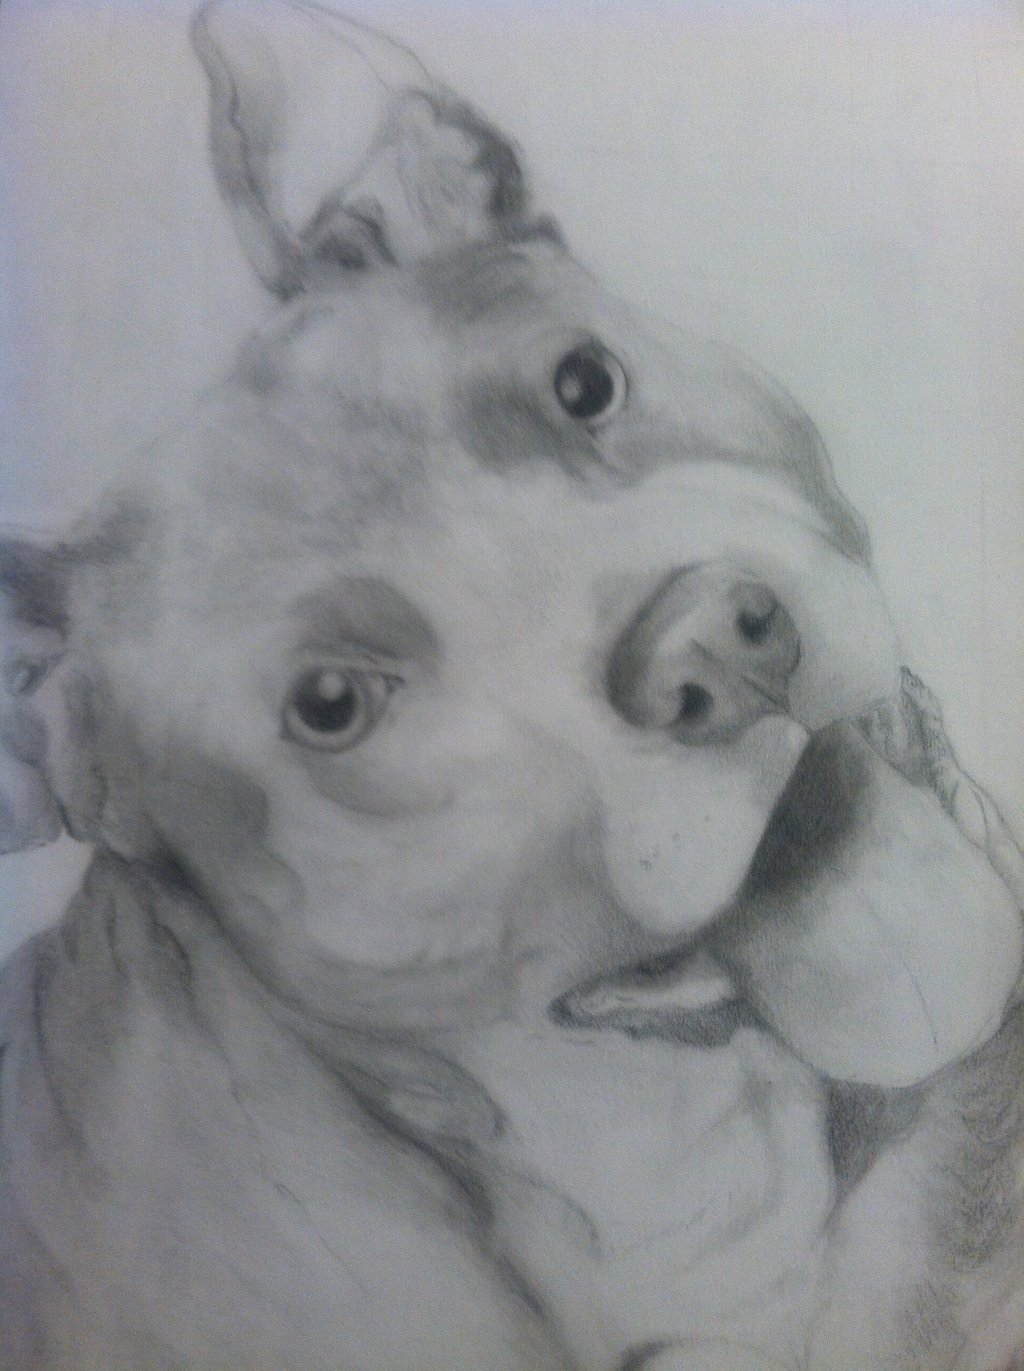 Drawn pitbull pencil drawing Bull Terrier Kennelsx xMush Pencil